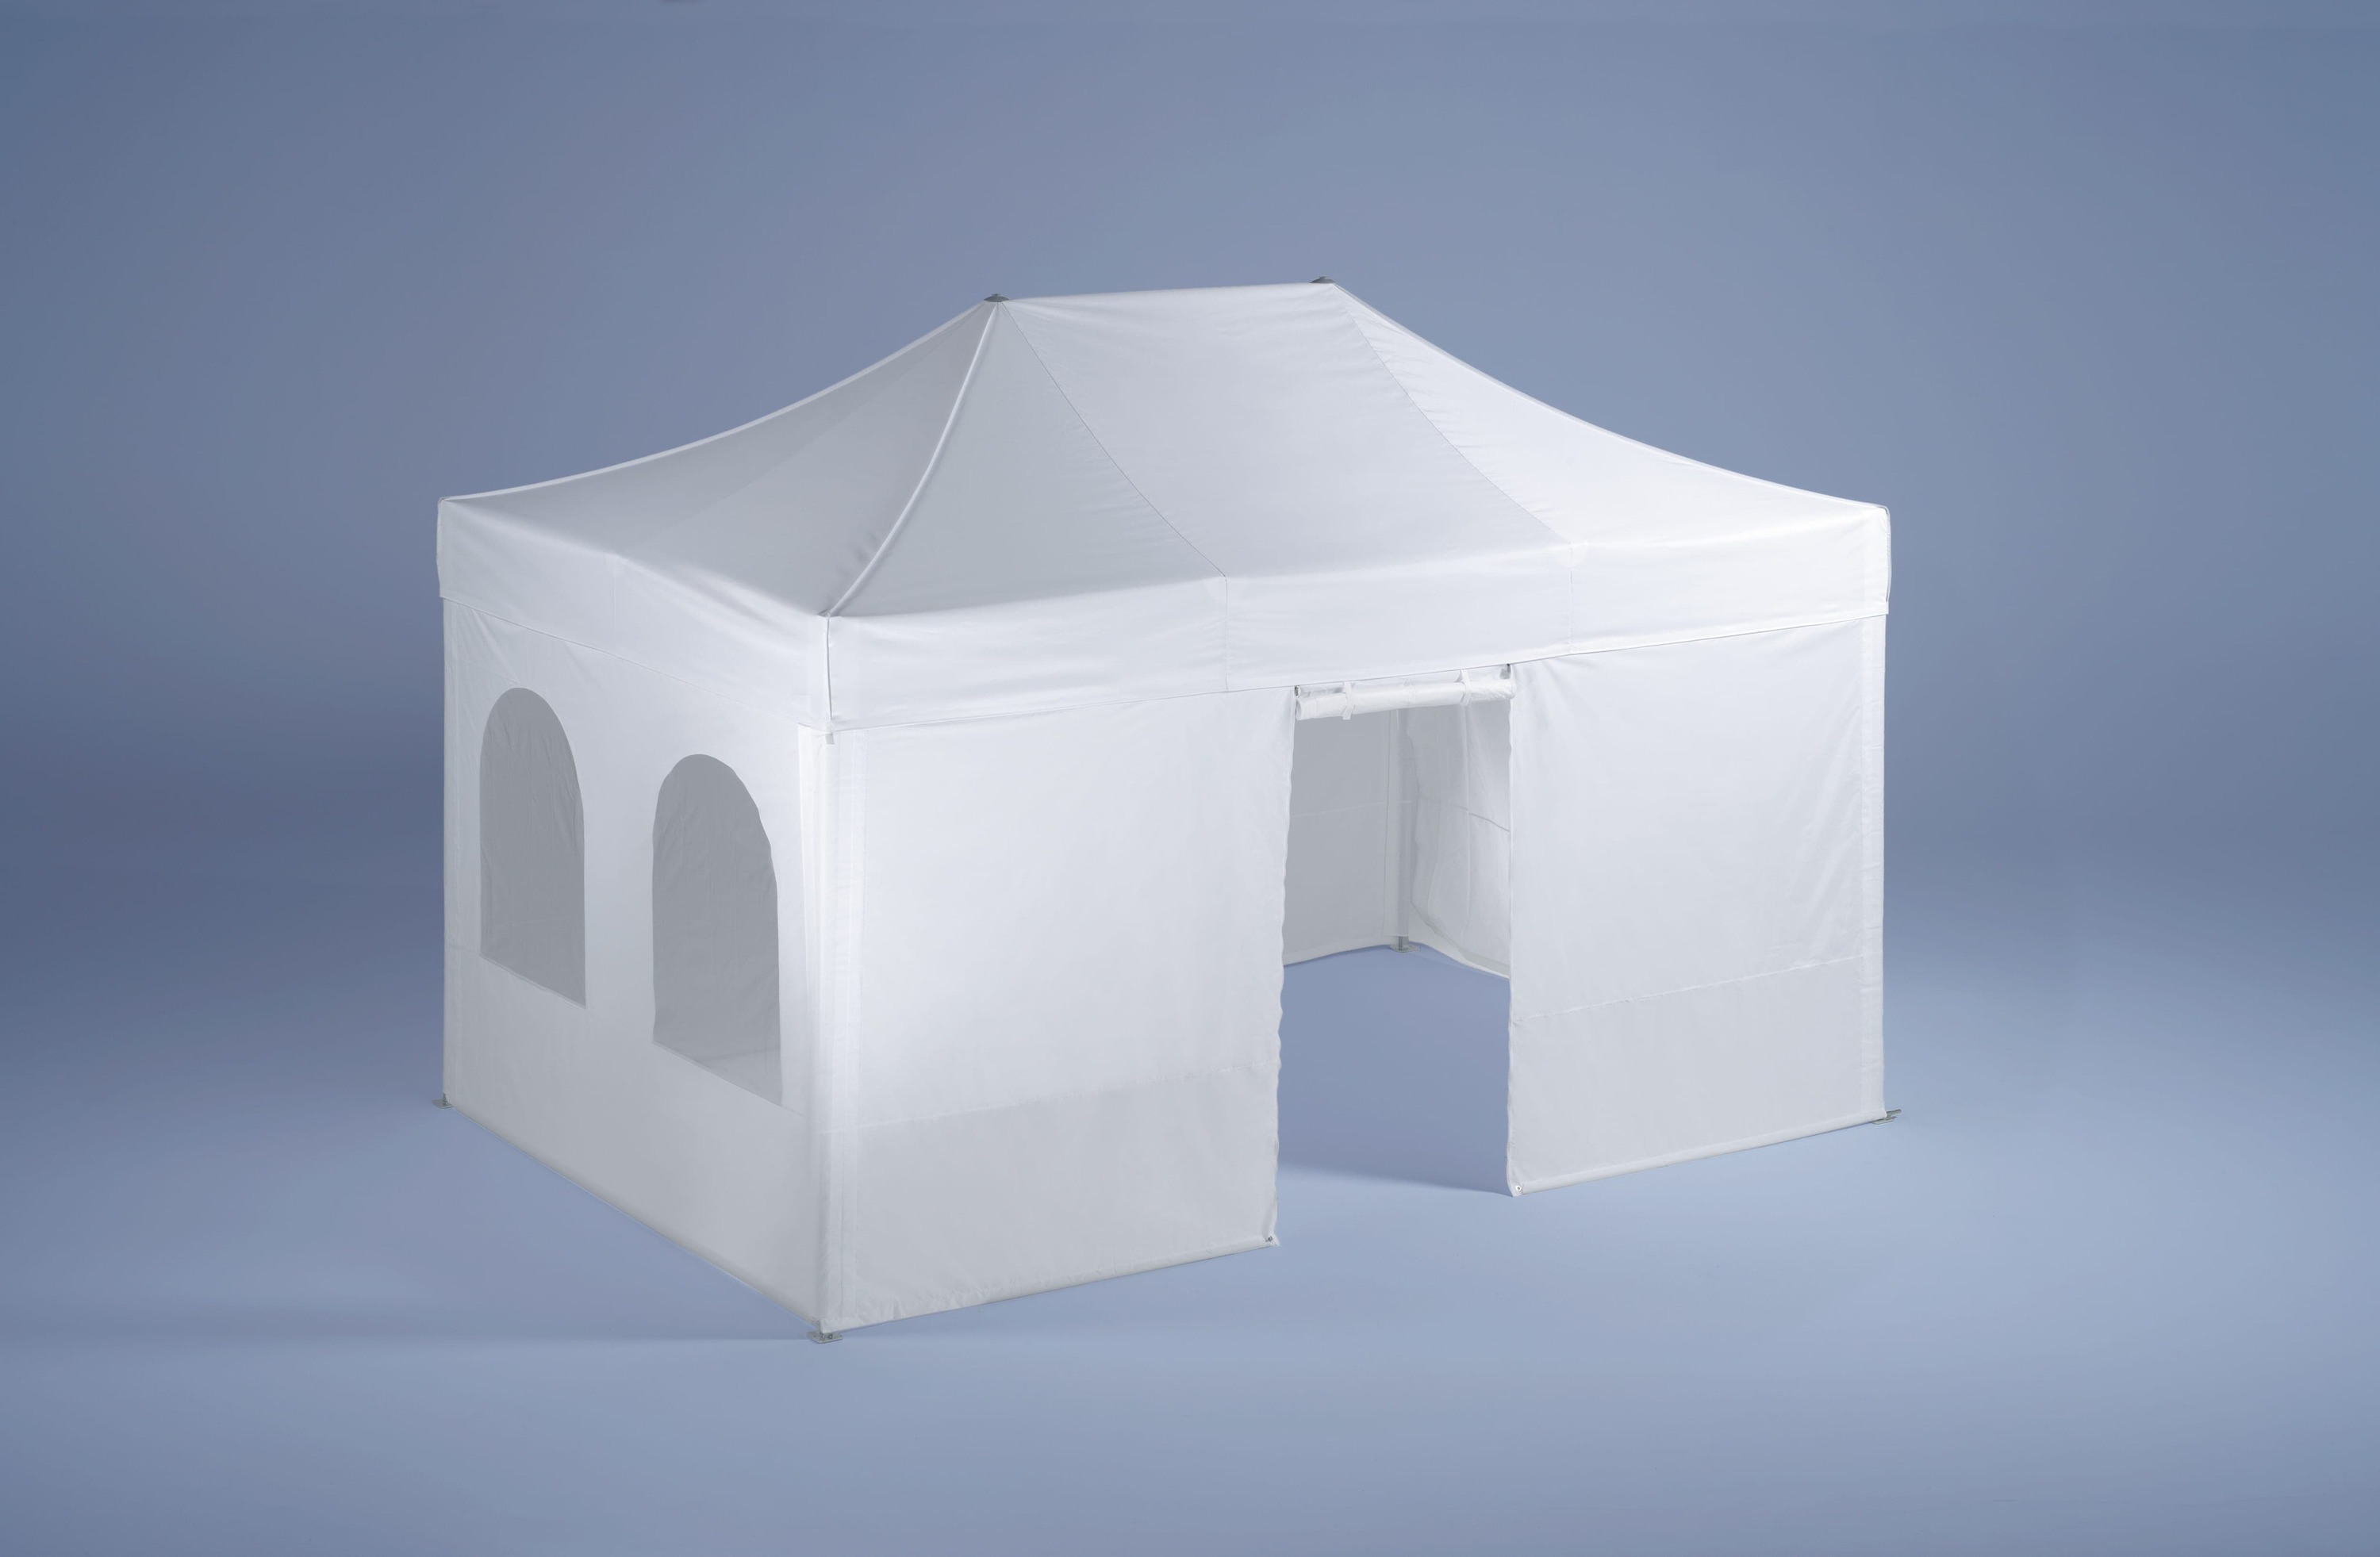 <p>Accessories &#8211; Walls</p> <p>Half and Full Height</p> <p>The walls are made of polyester and are fastened using Velcro fasteners. Promotional information can be printed on their entire surface. The walls can be full providing more printing surface, or they can include elegant cathedral windows. They can include a door, closed with a zipper, from inside and out, and can also be rolled up and fastened using Velcro fasteners. The wall can be half-height secured in place with a crossbar.</p>